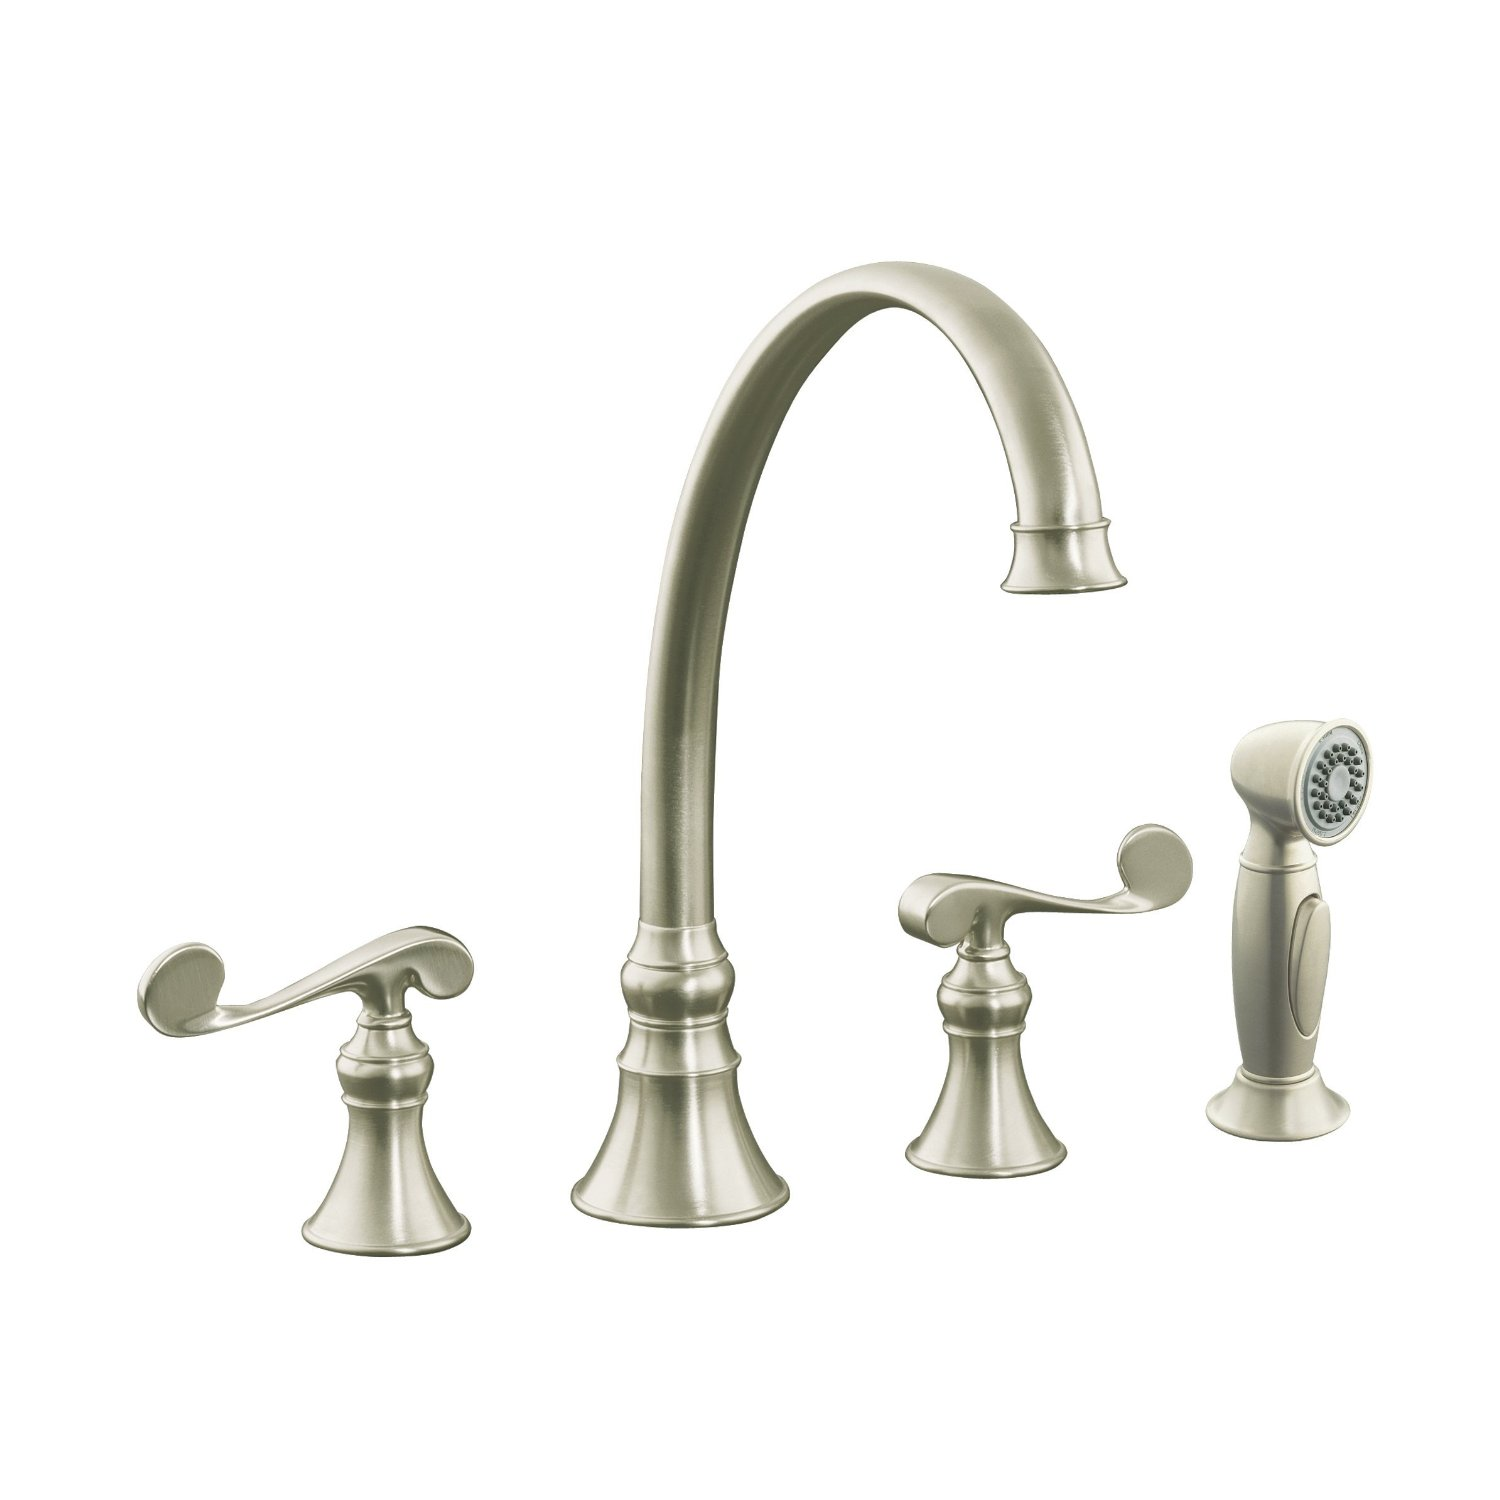 ... Kitchen Sink Faucet (Vibrant Brushed Nickel) Best Kitchen Faucets